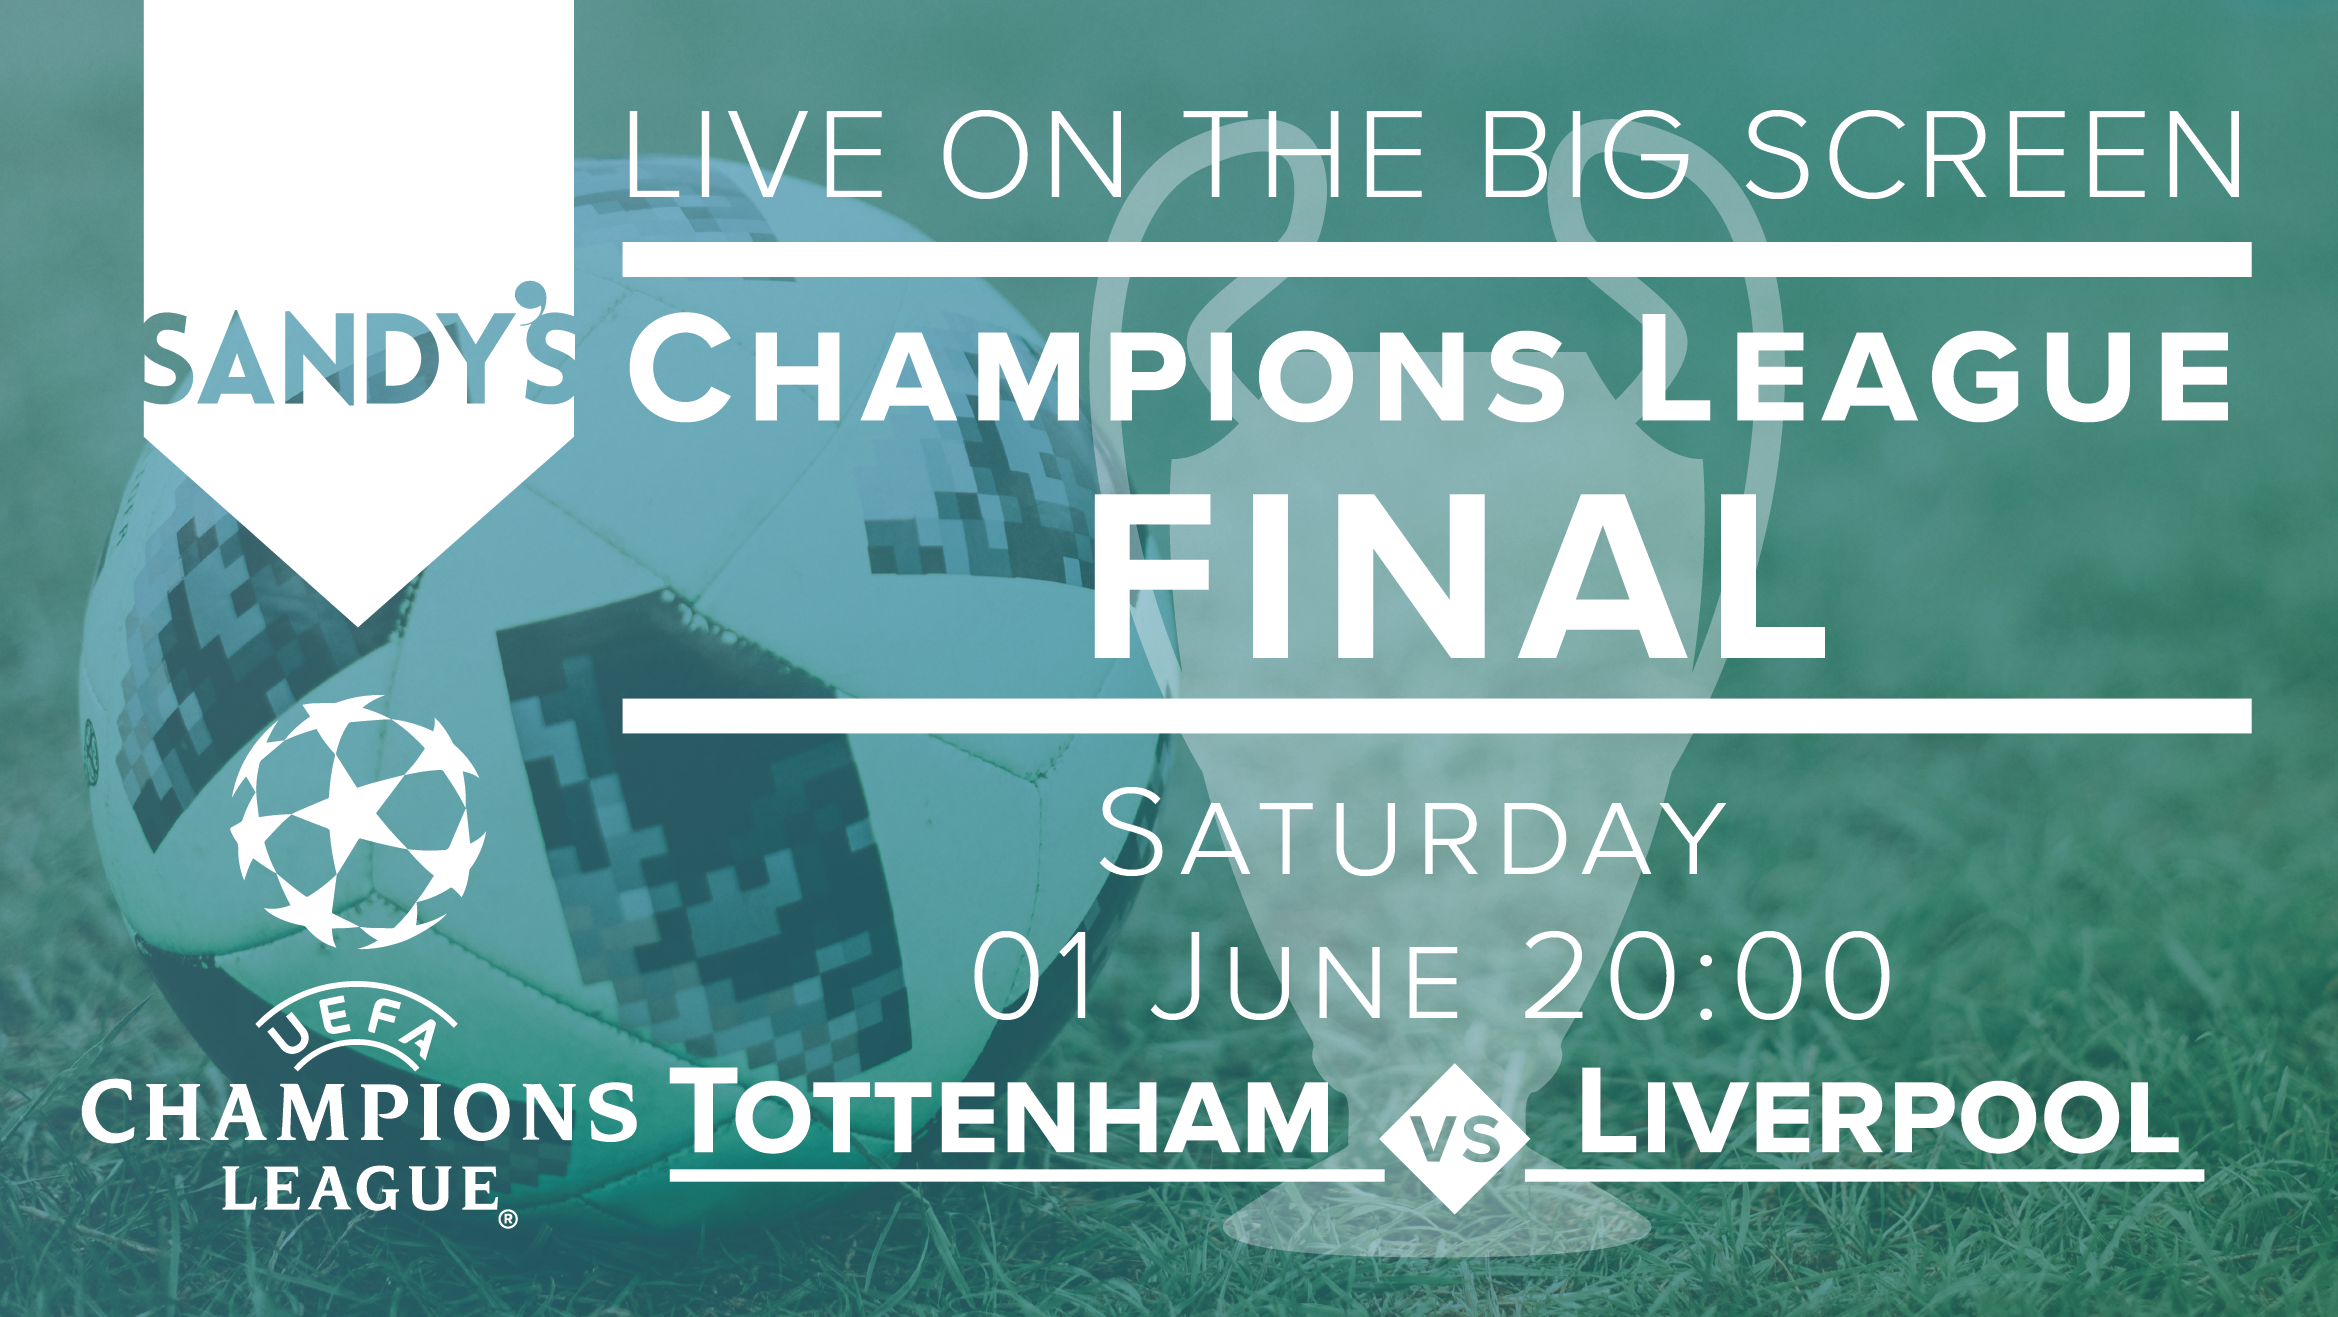 Champions League - Sandy's Bar - 01/06/19 20:00